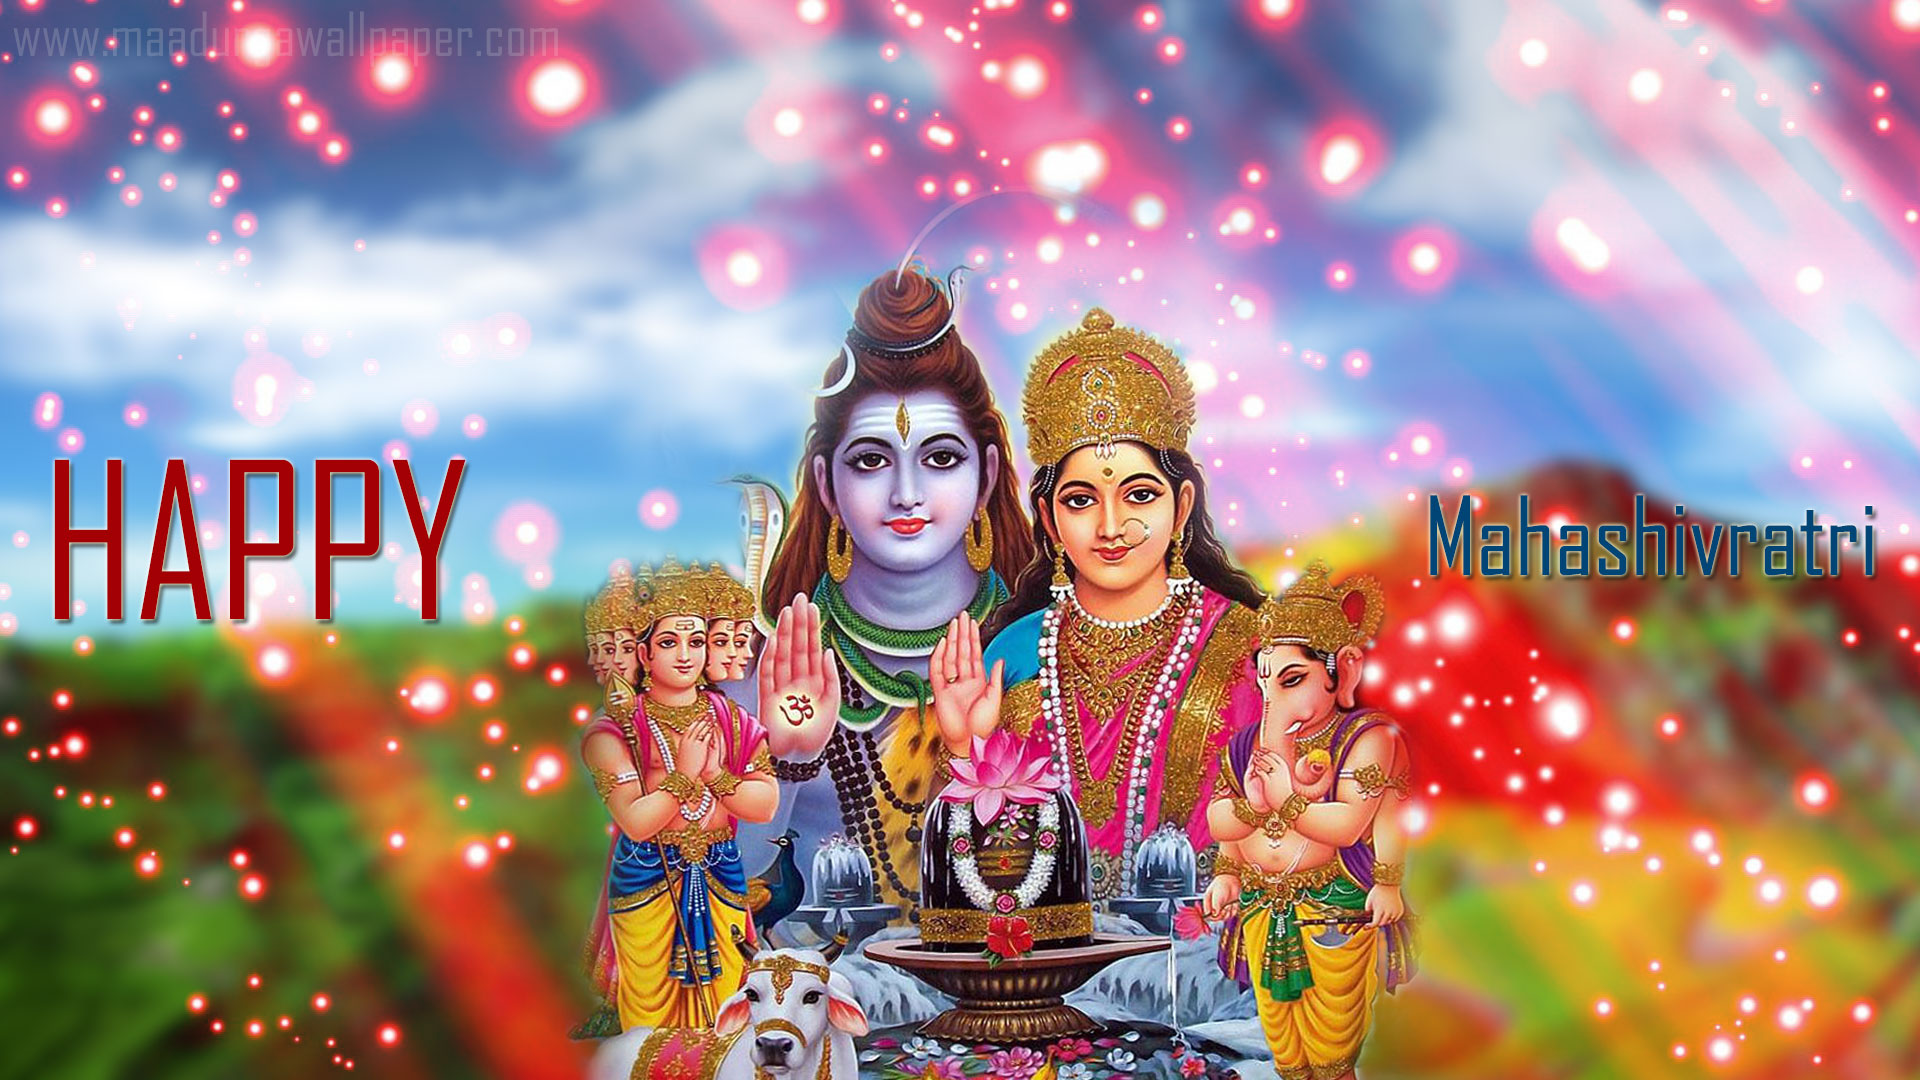 Ayyappan 3d Wallpaper Lord Shiva Images Lord Shiva Photos Hindu God Shiva Hd